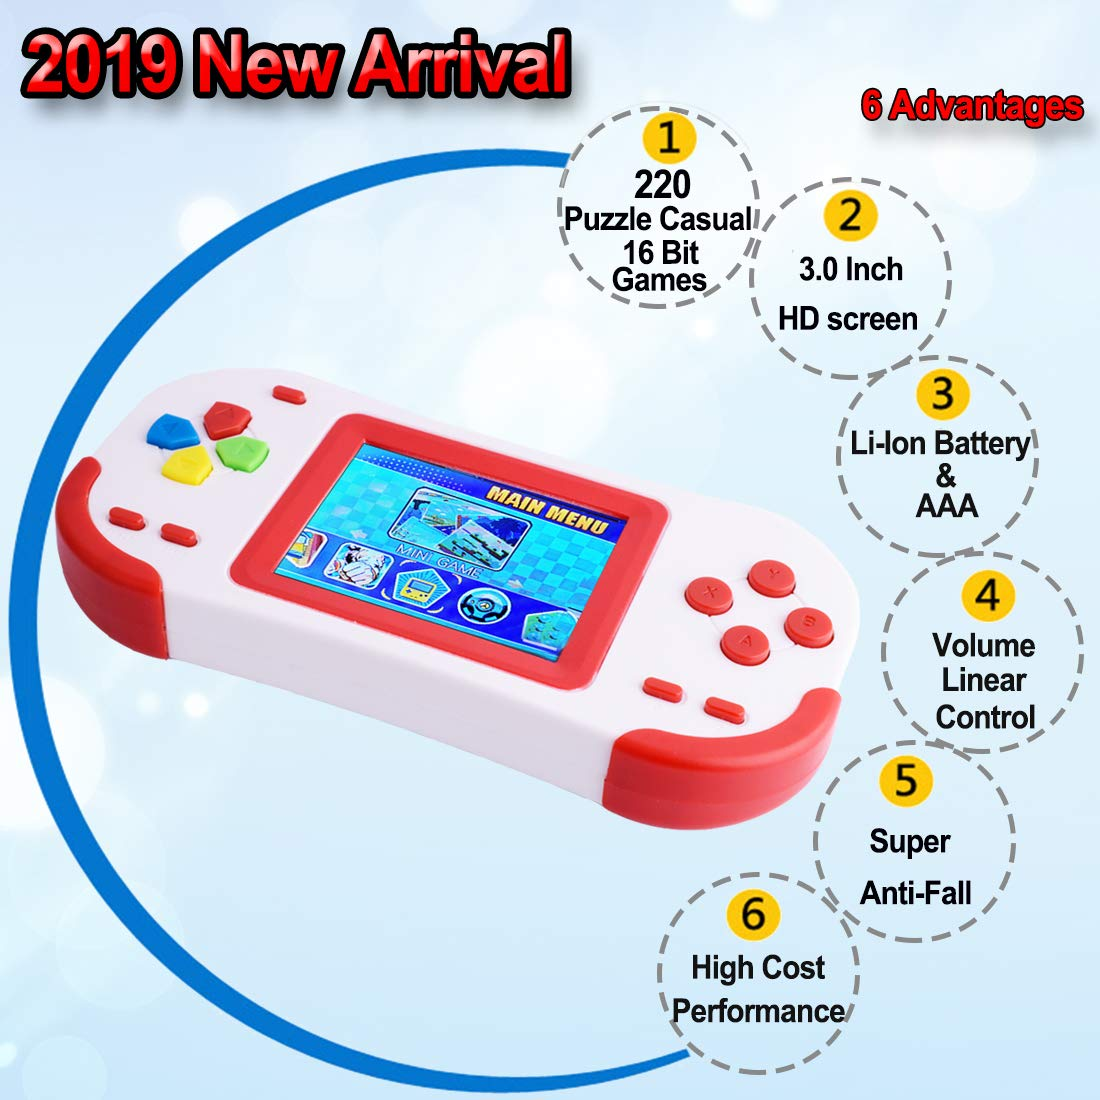 TEBIYOU Handheld Game Console for Adults Kids Seniors with Built in 16 Bit 220 HD Classic Games 3.0'' Large Screen Portable Retro Game Player Children Electronic Handheld Games (Red) by TEBIYOU (Image #2)